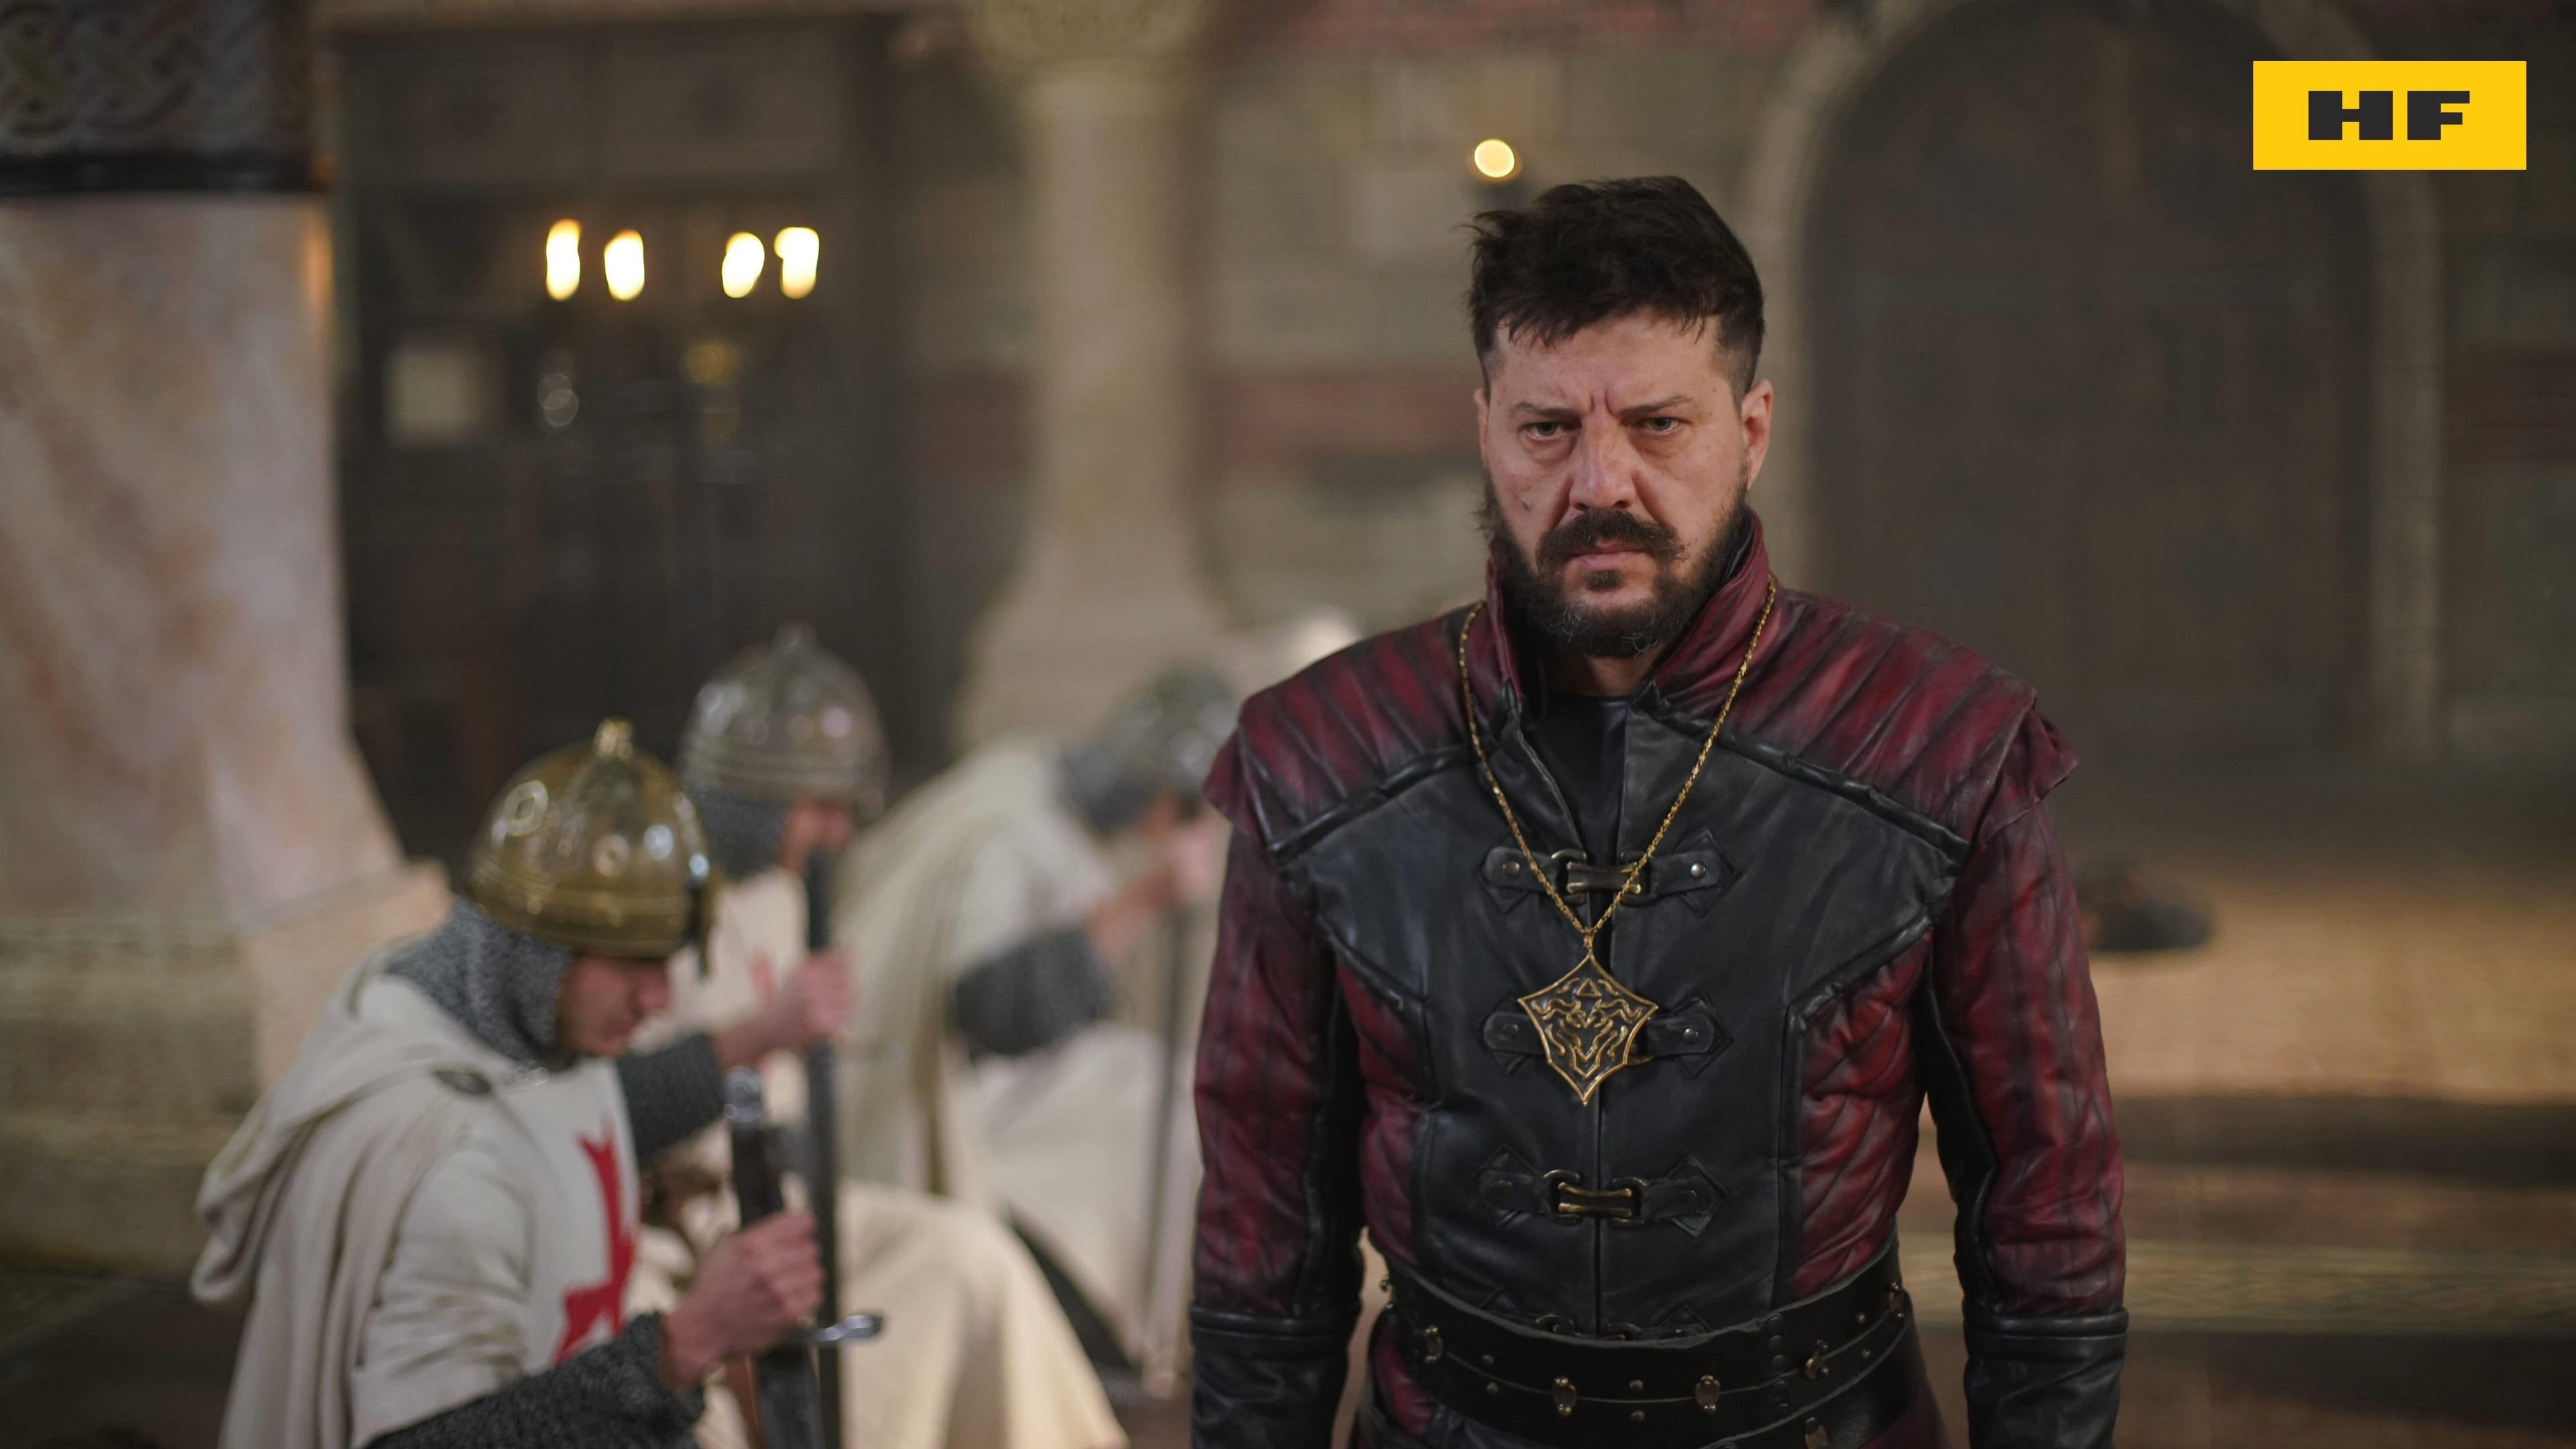 Dirilis Ertugrul season 5 Episode 6